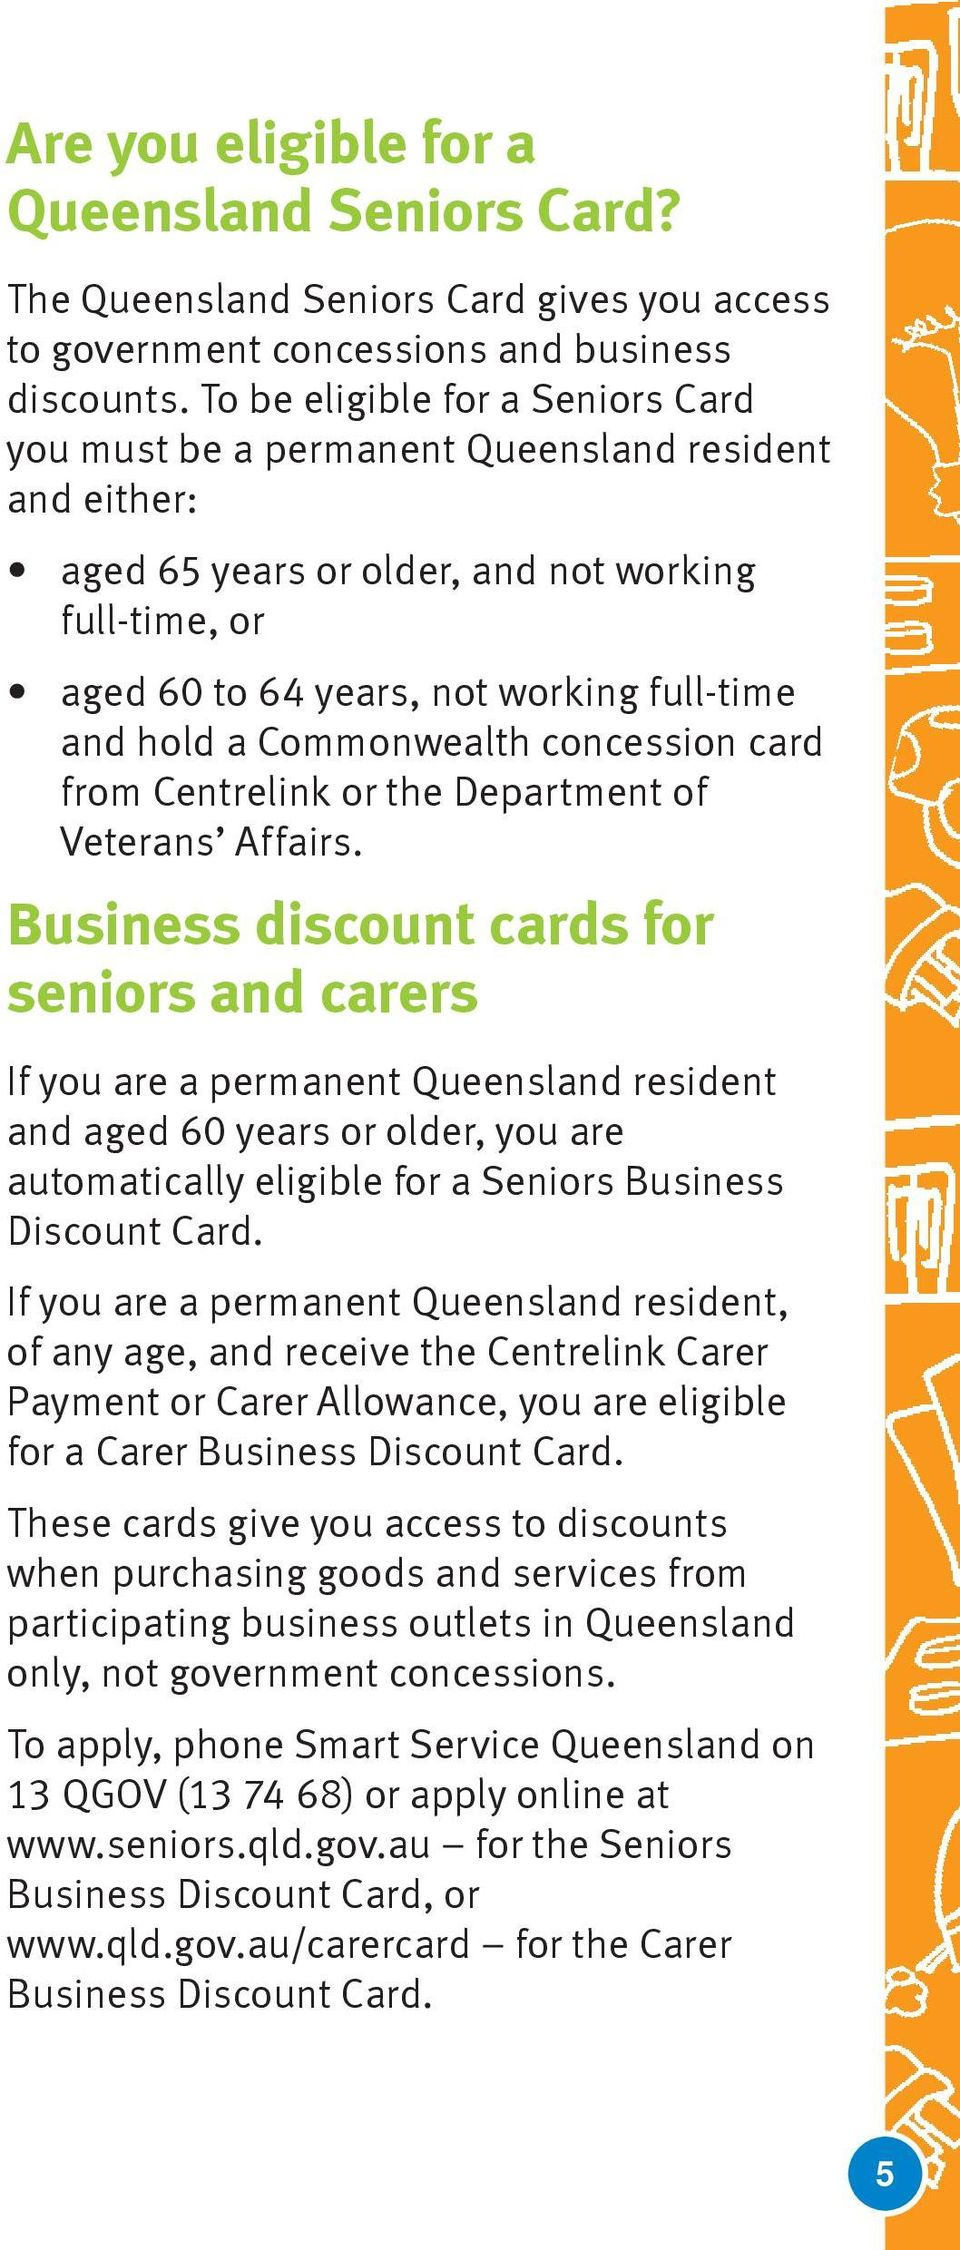 Commonwealth concession card from Centrelink or the Department of Veterans Affairs.